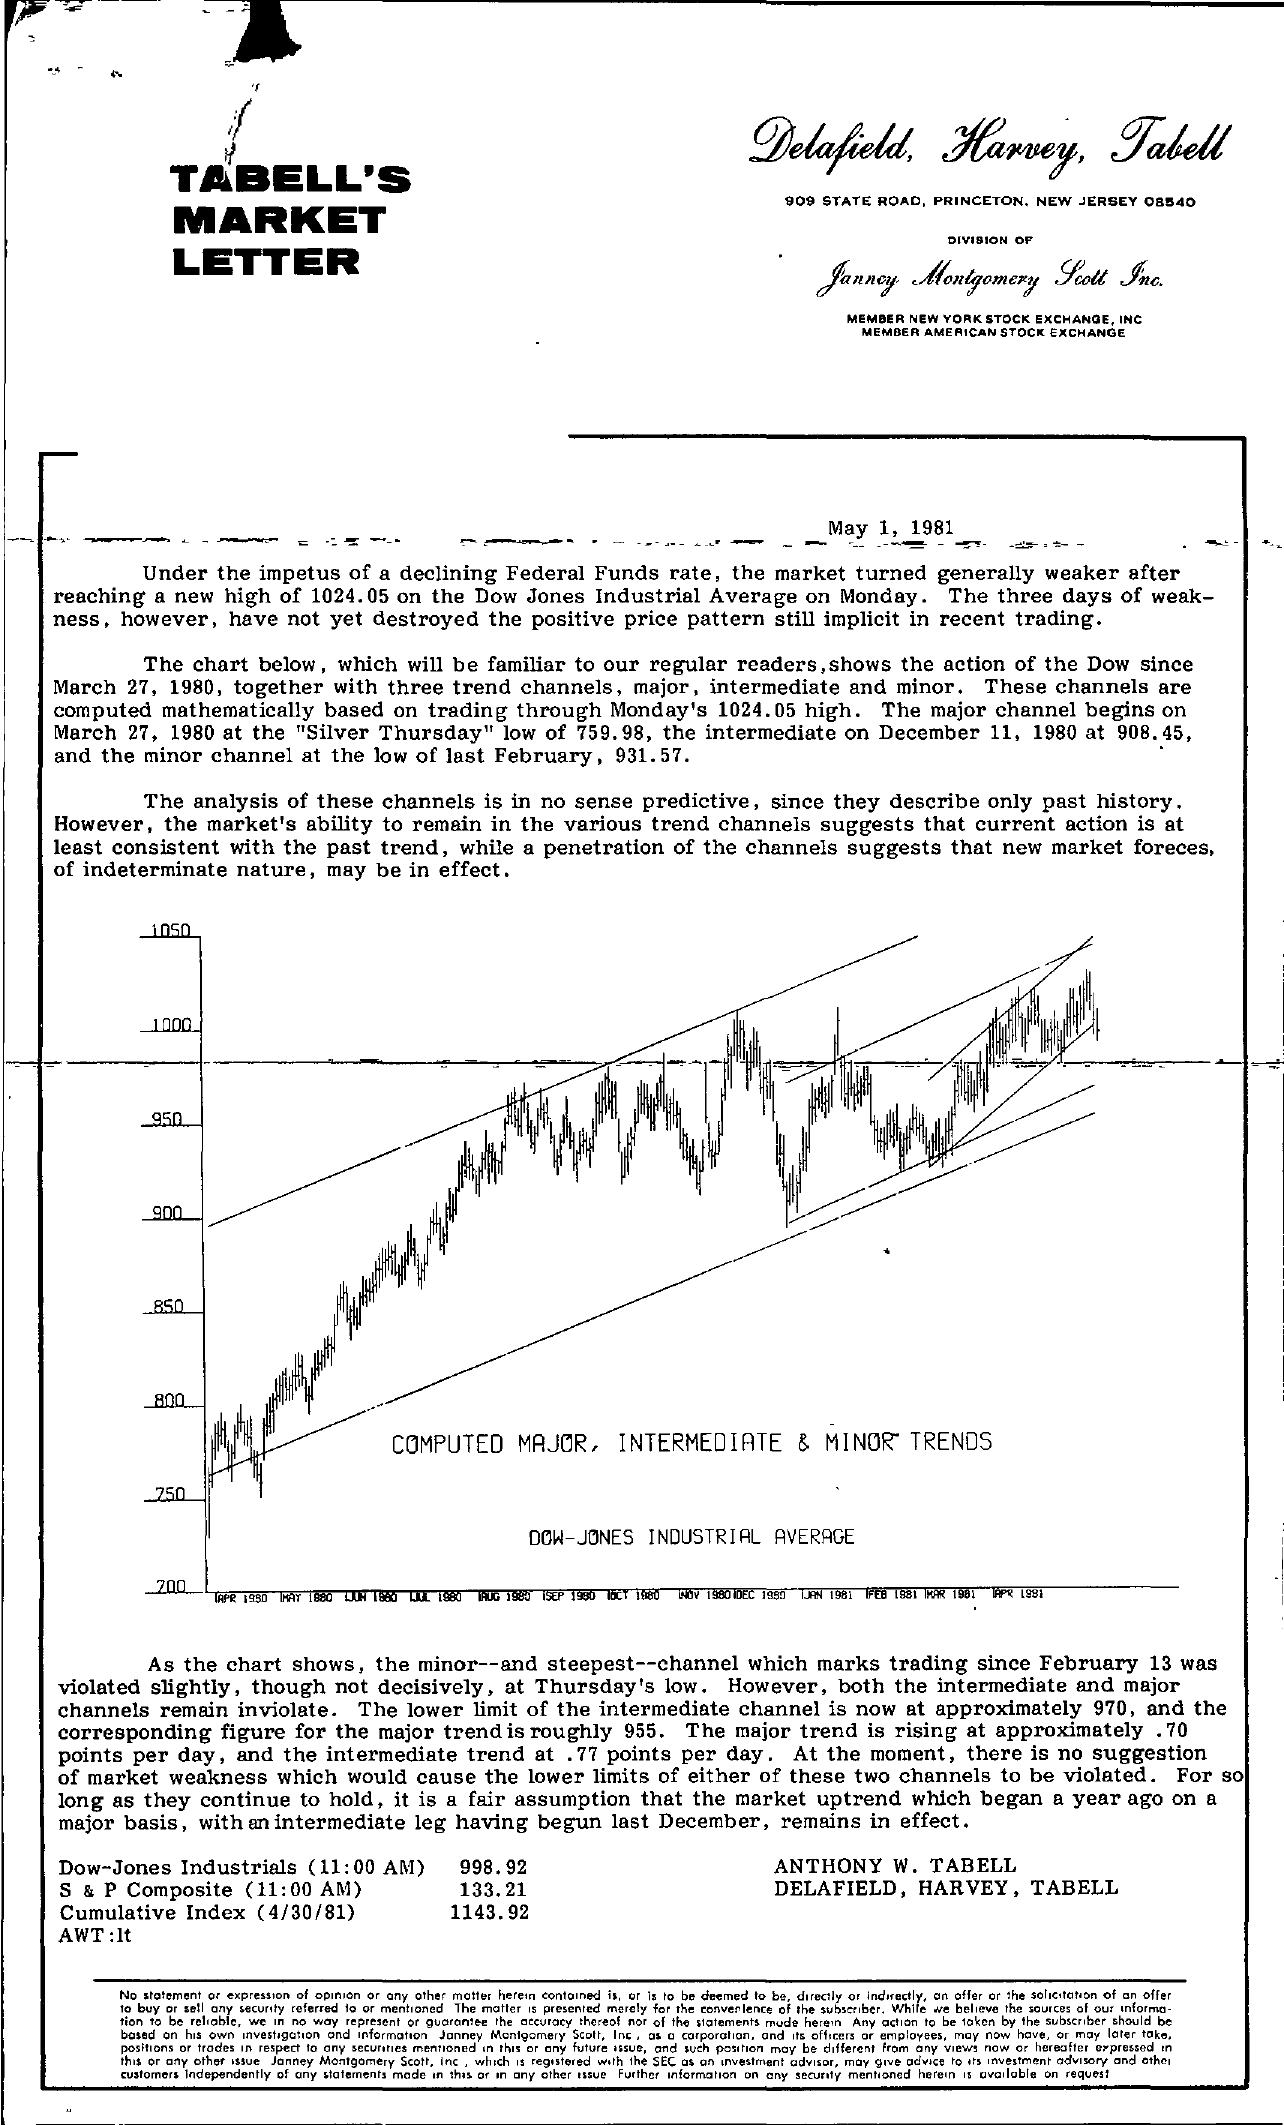 Tabell's Market Letter - May 01, 1981